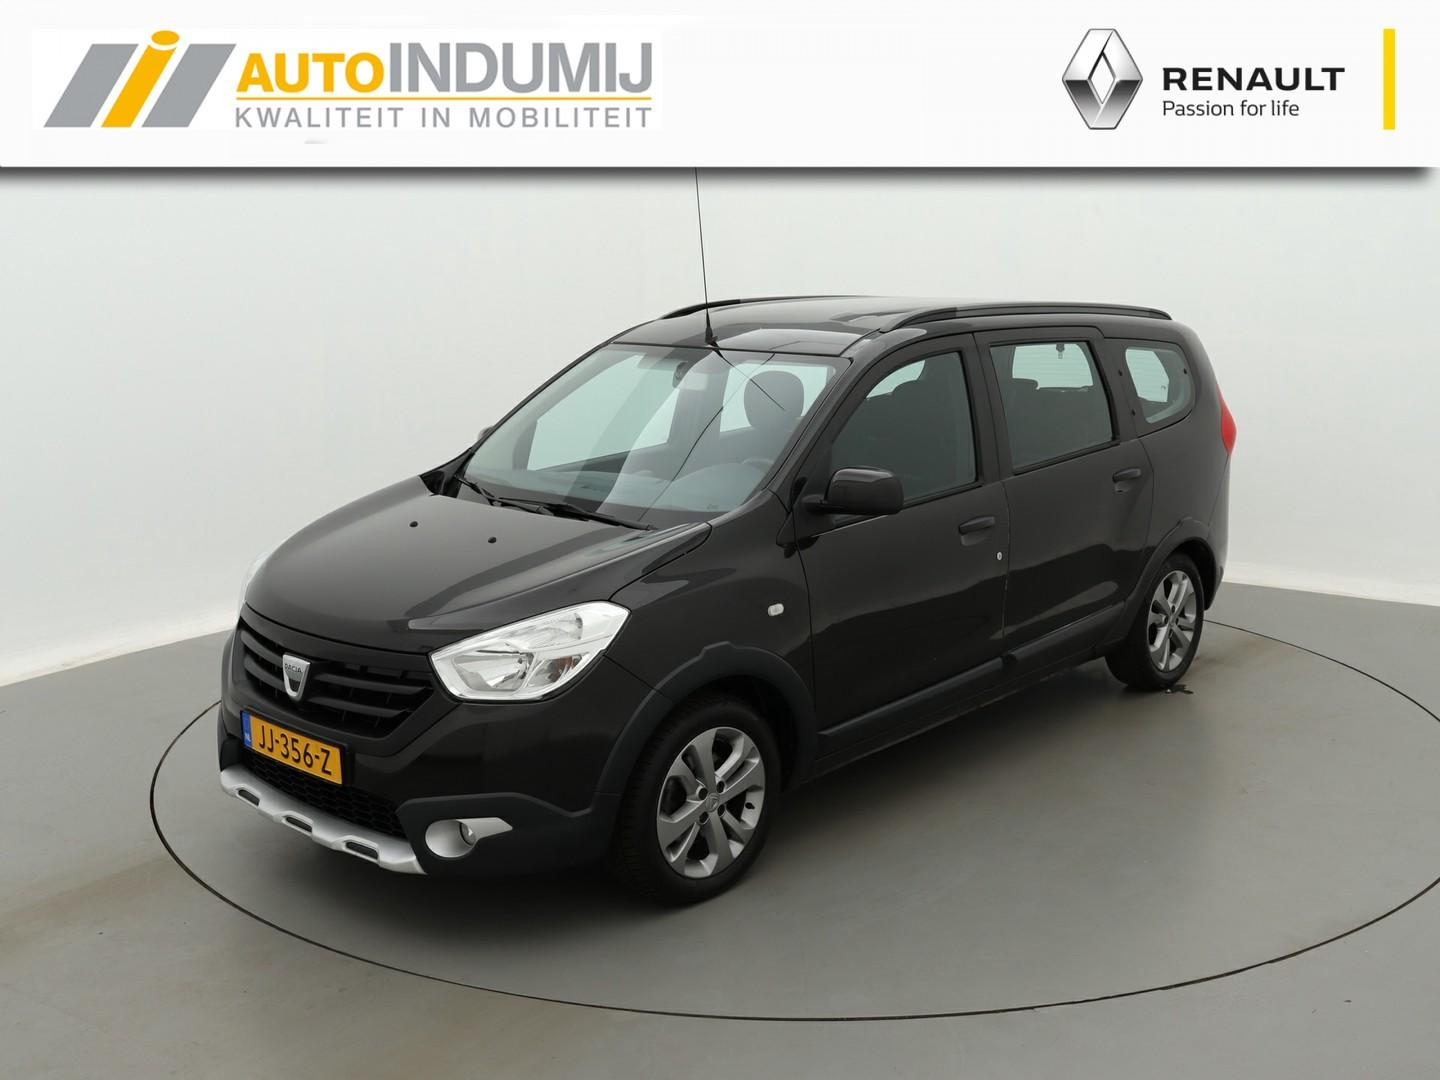 Dacia Lodgy 1.2 tce 115pk stepway 7persoons. + trekhaak / navigatie / cruise control / airco